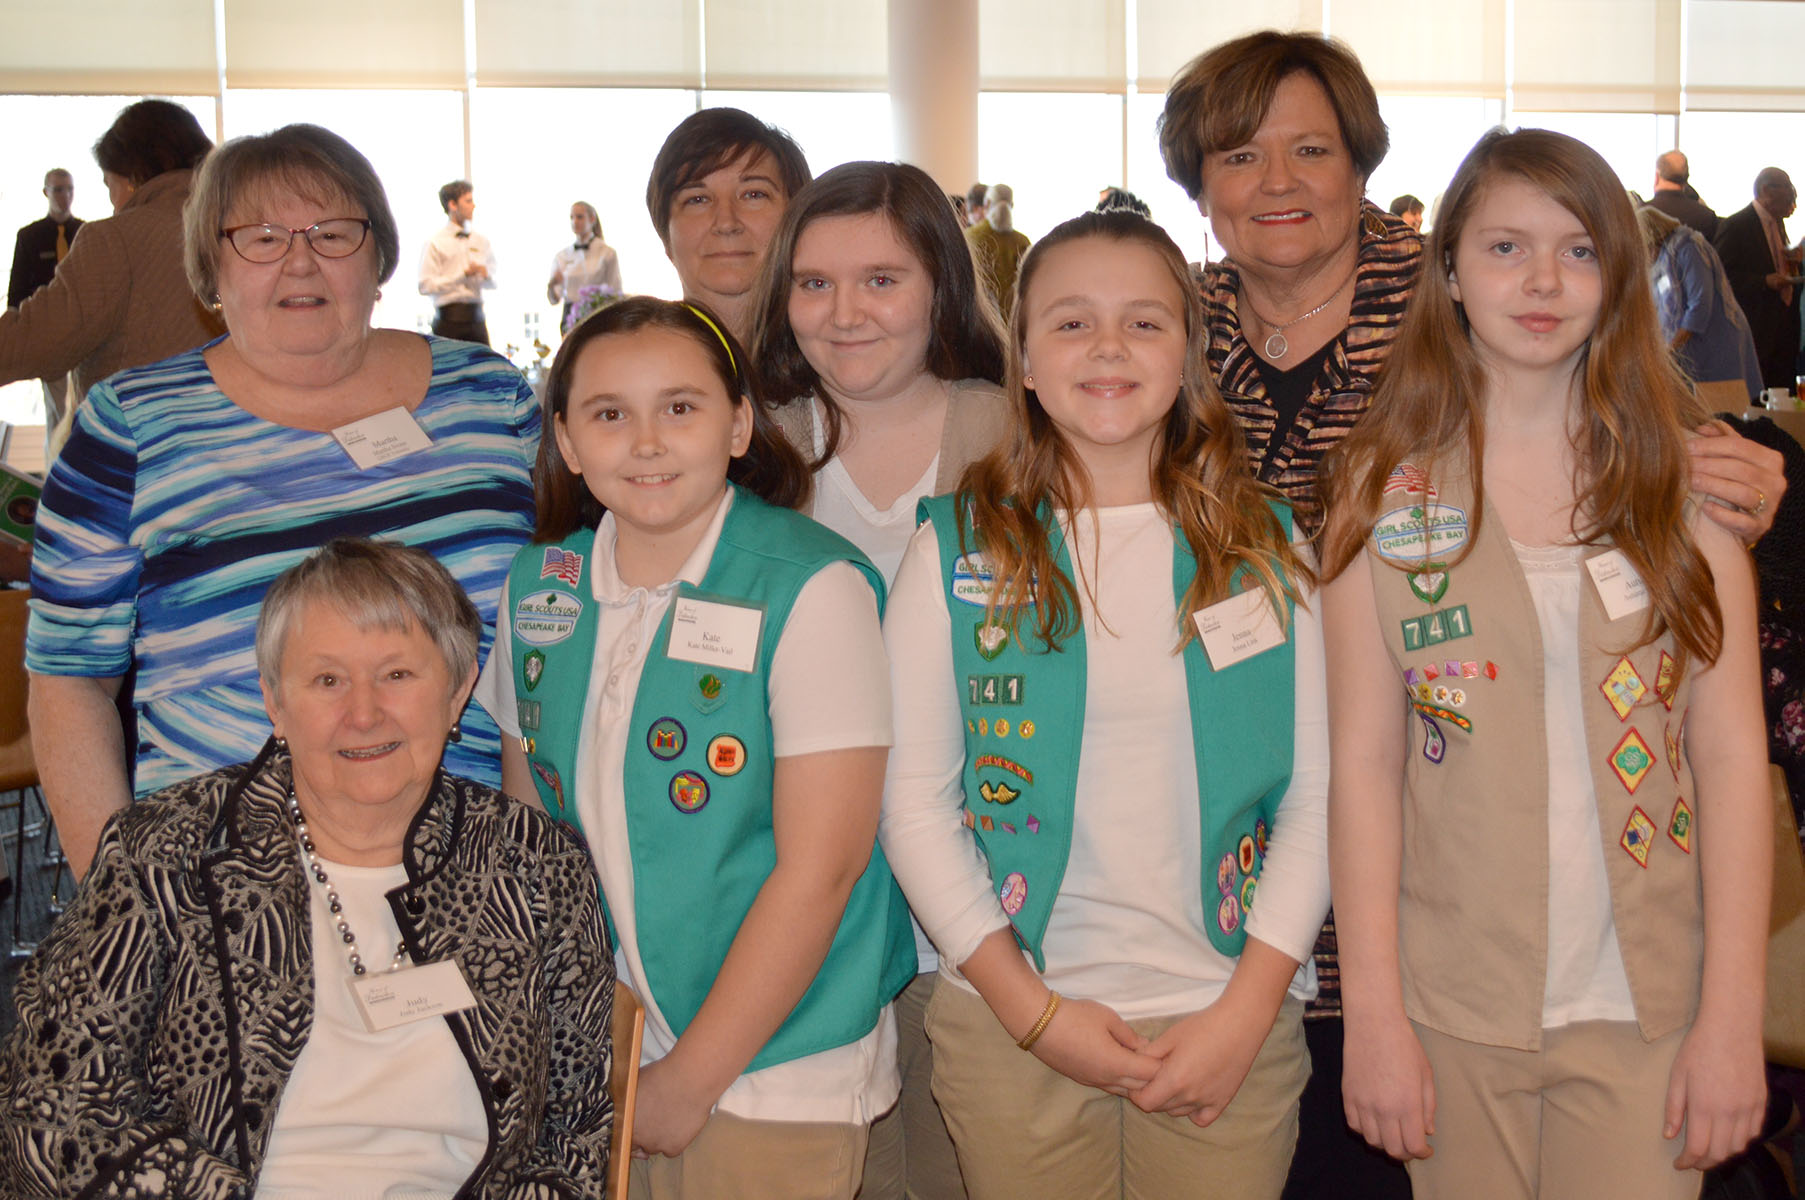 Girl Scouts of the Chesapeake Bay Lower Shore Woman of Distinction dinner